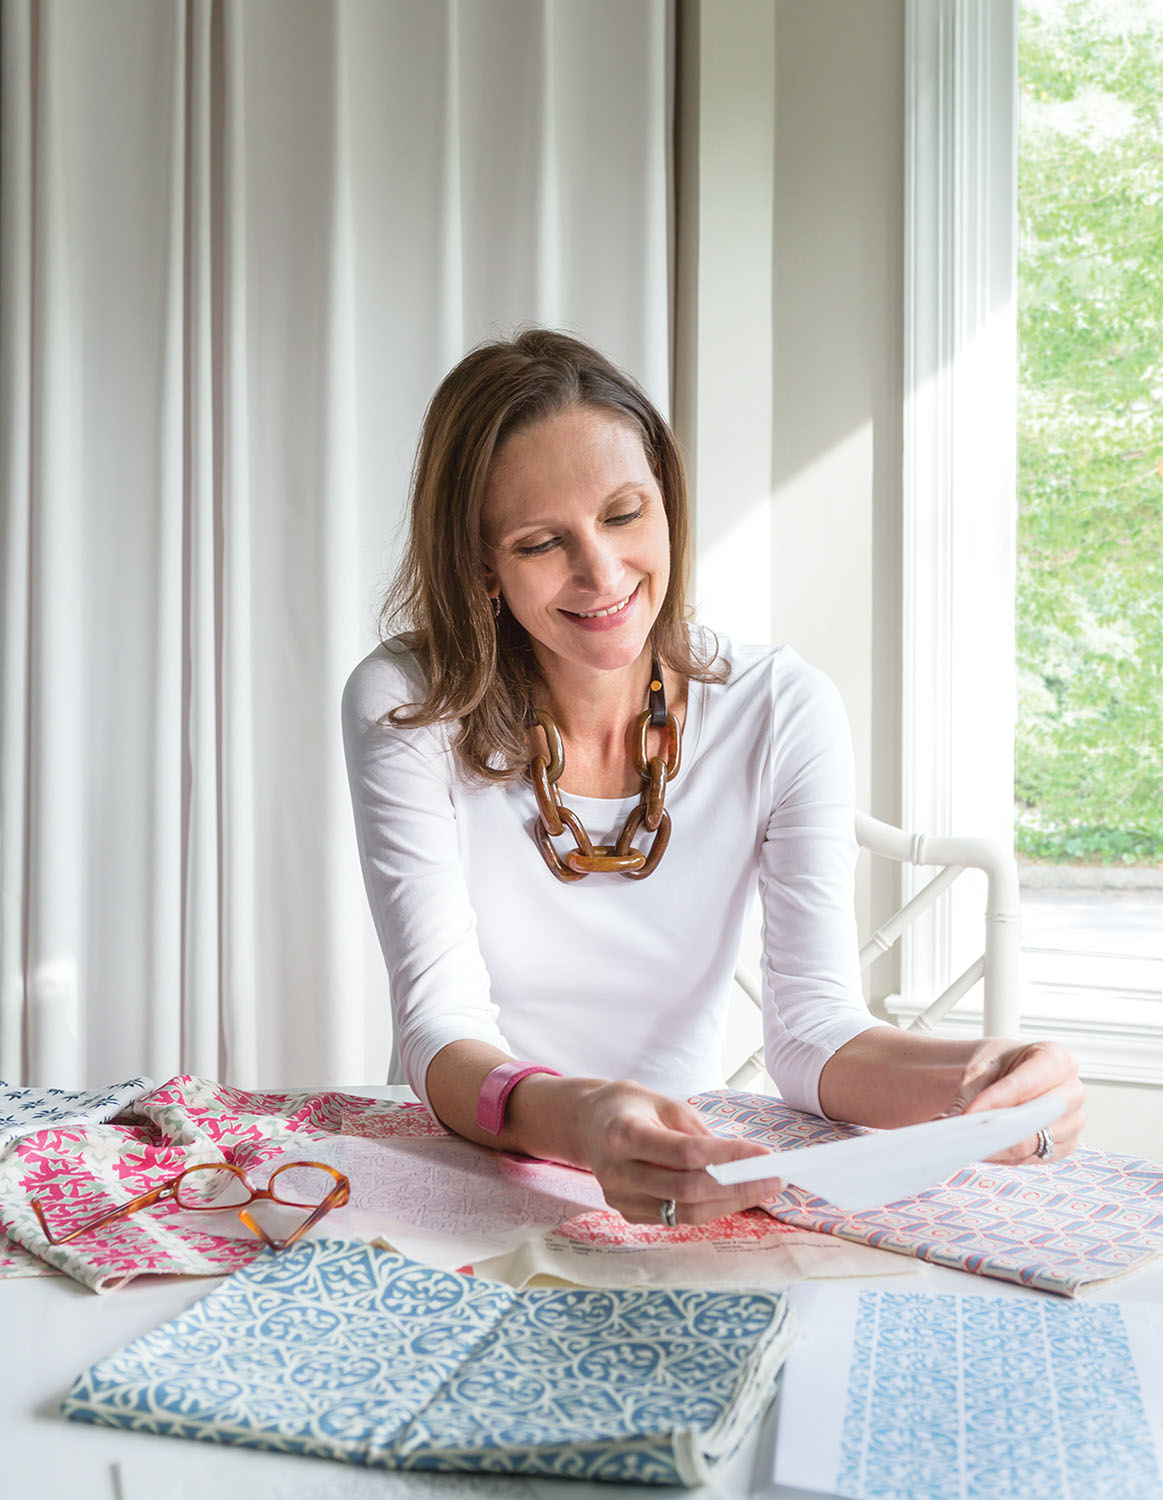 portrait of the founder of Marika Meyer Textiles